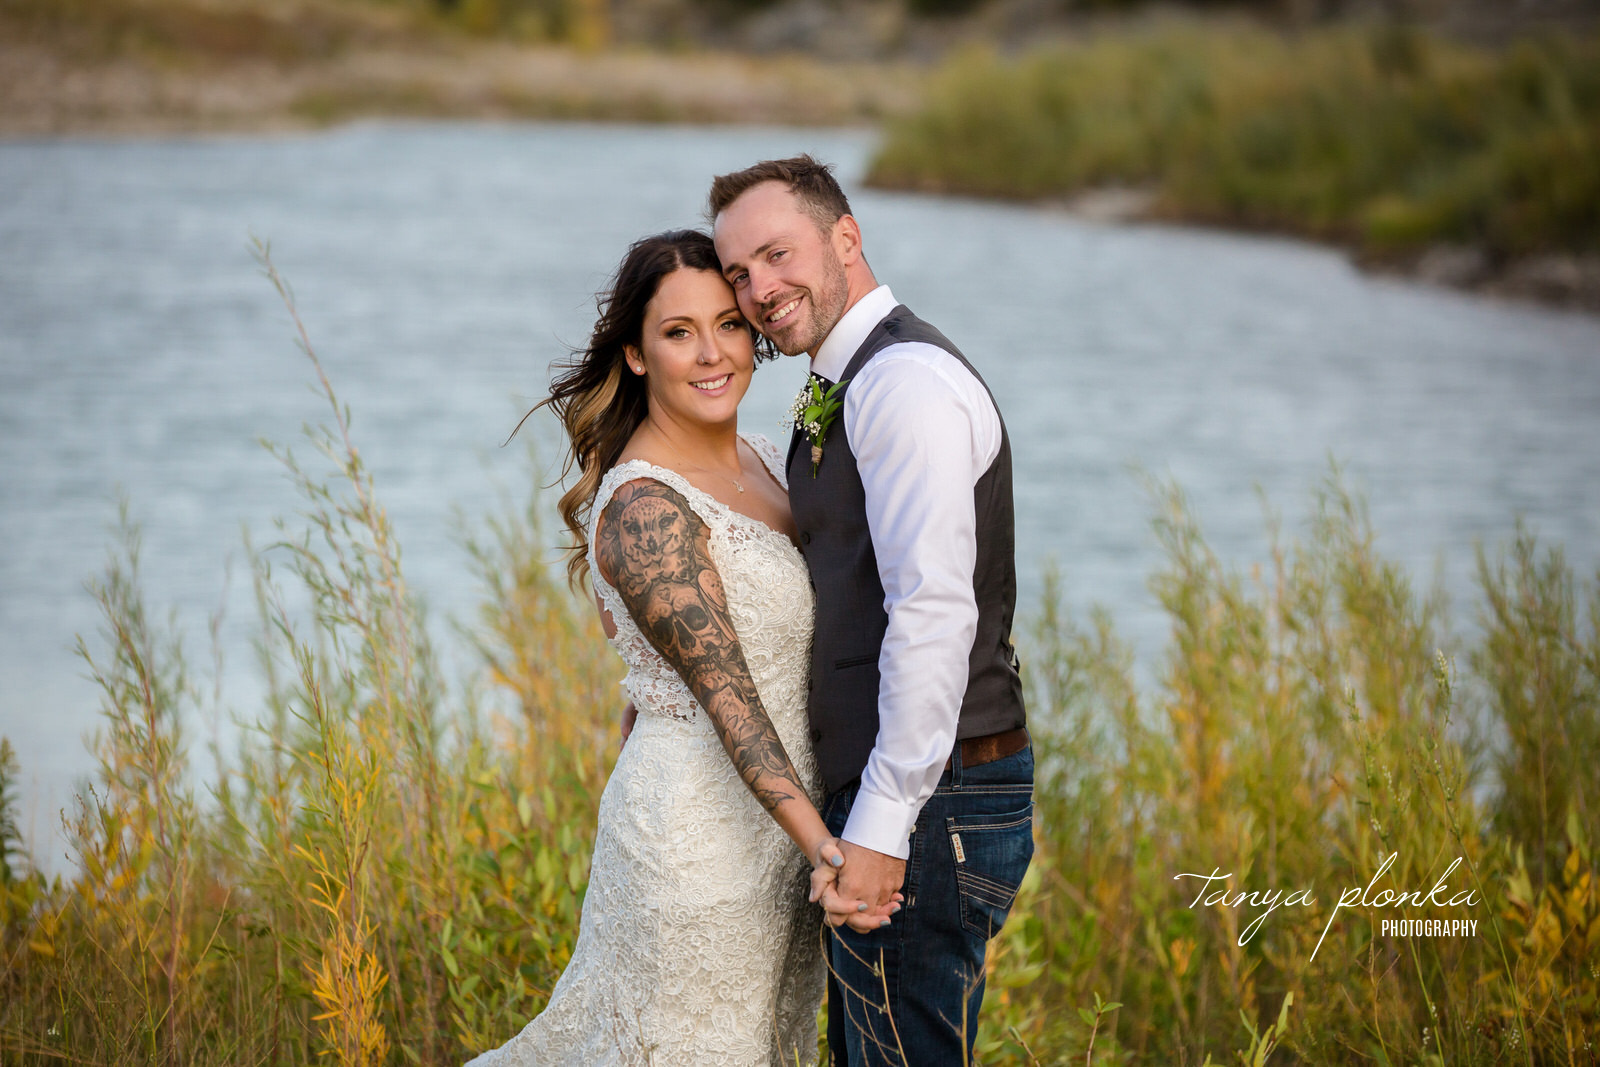 wedding couple with tattooes smiles at camera while holding hands